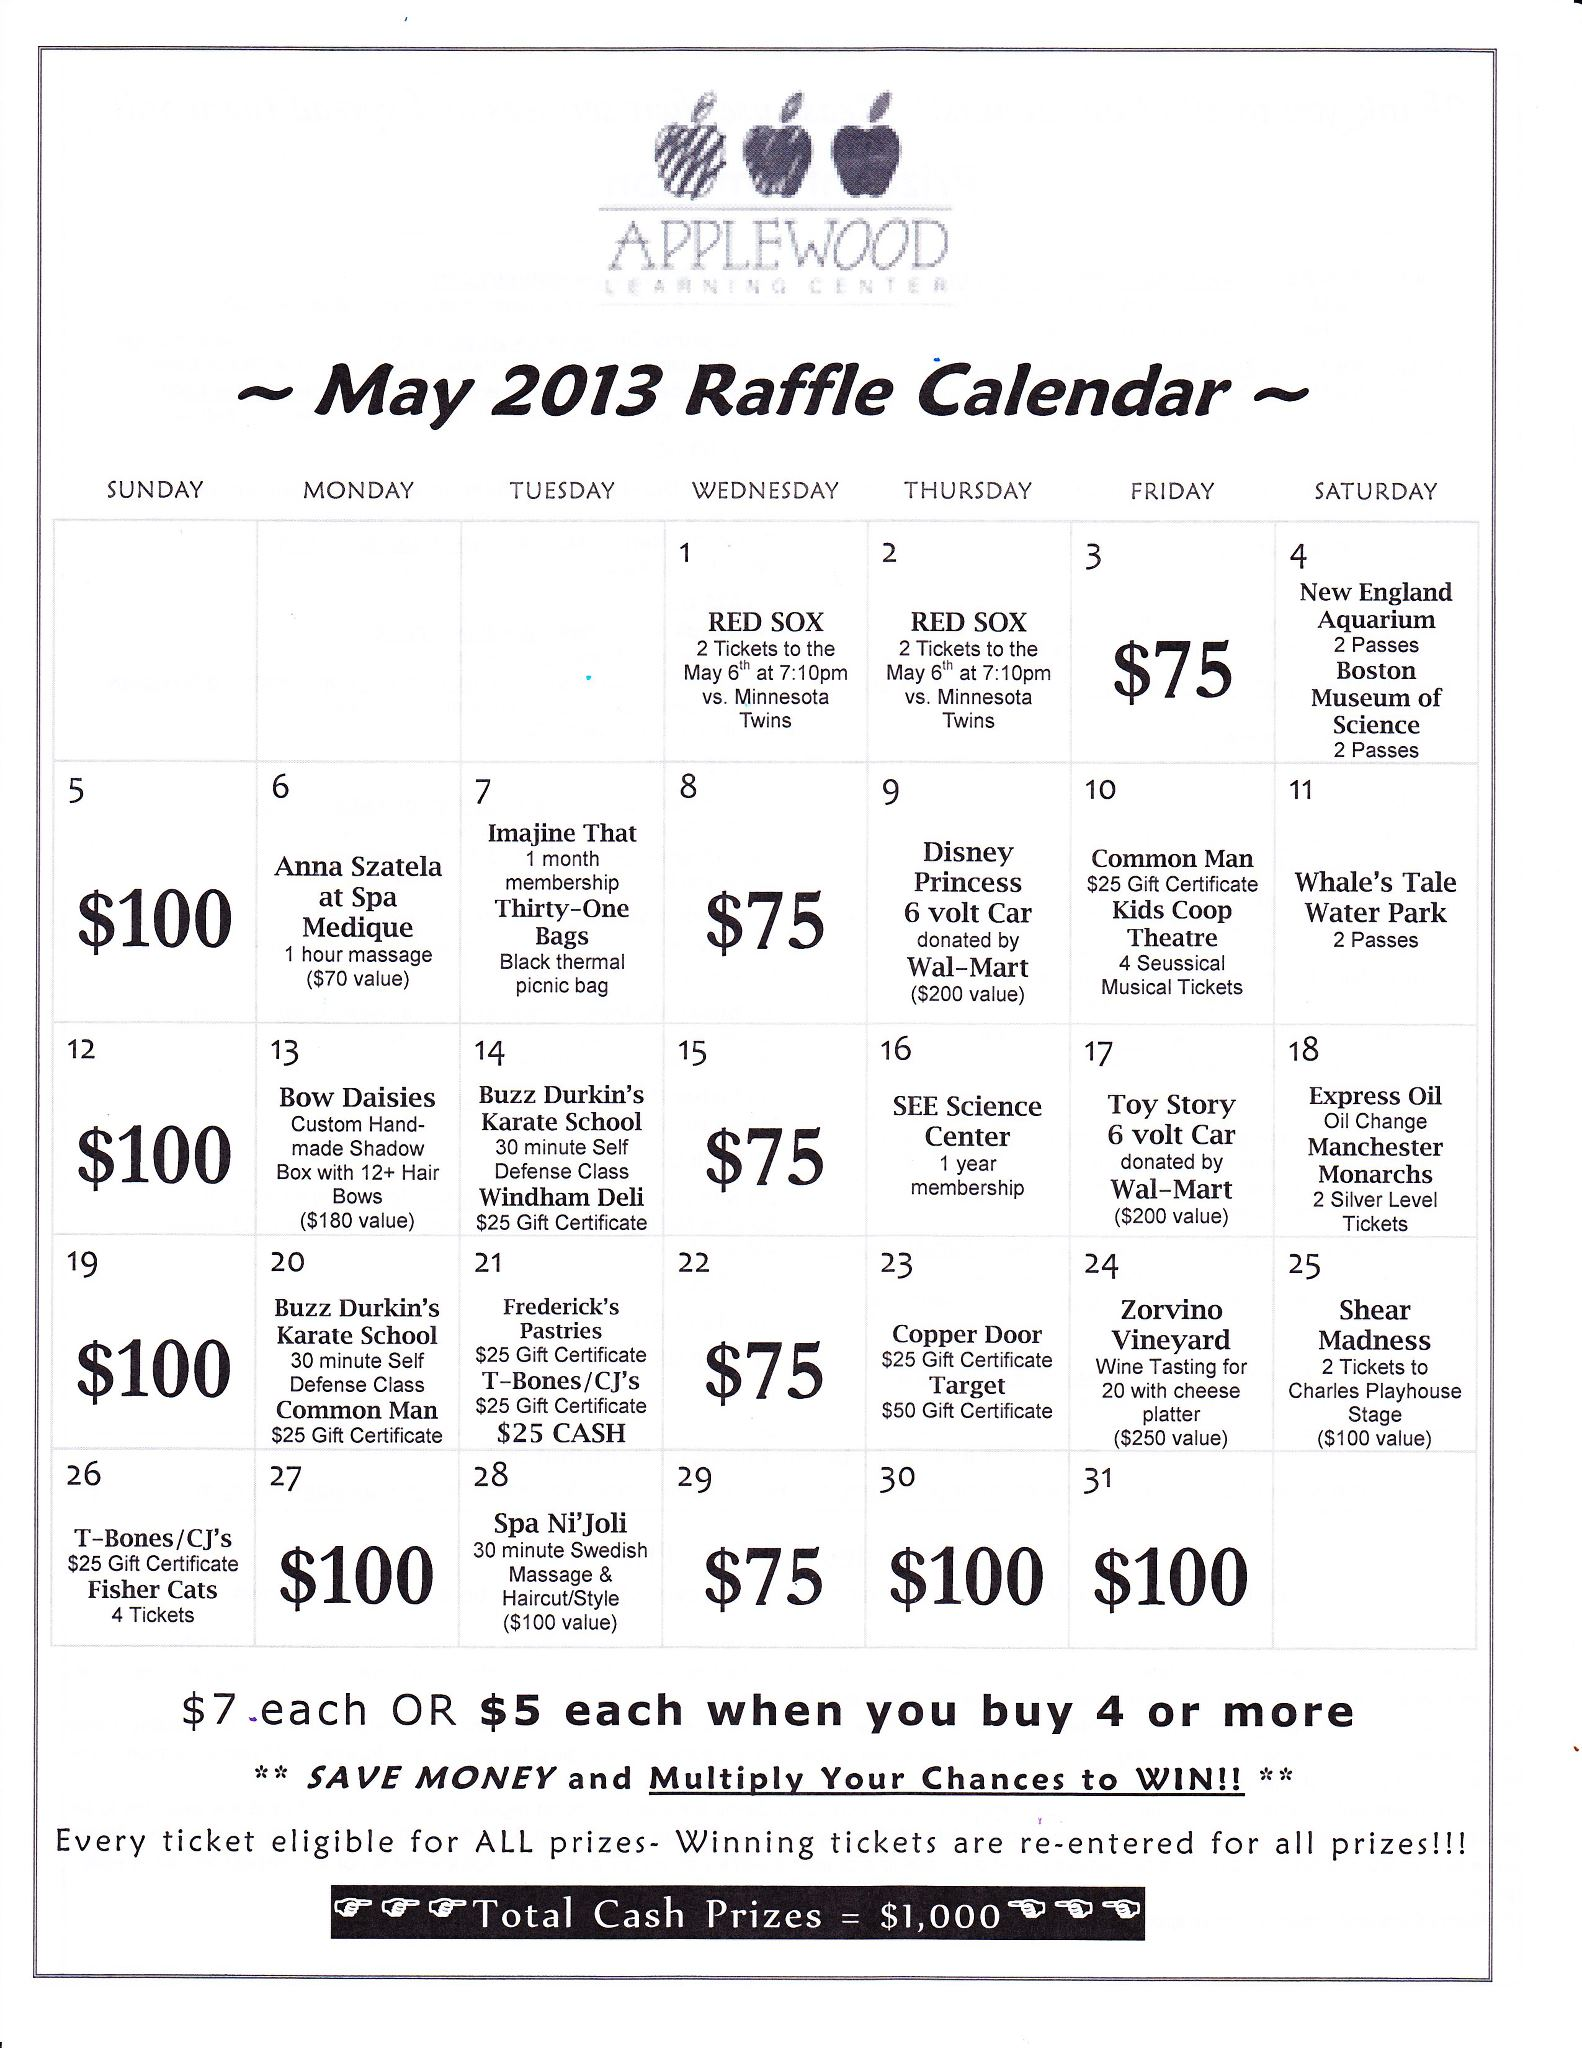 Calendar Raffle Ideas : Annual calendar just b use